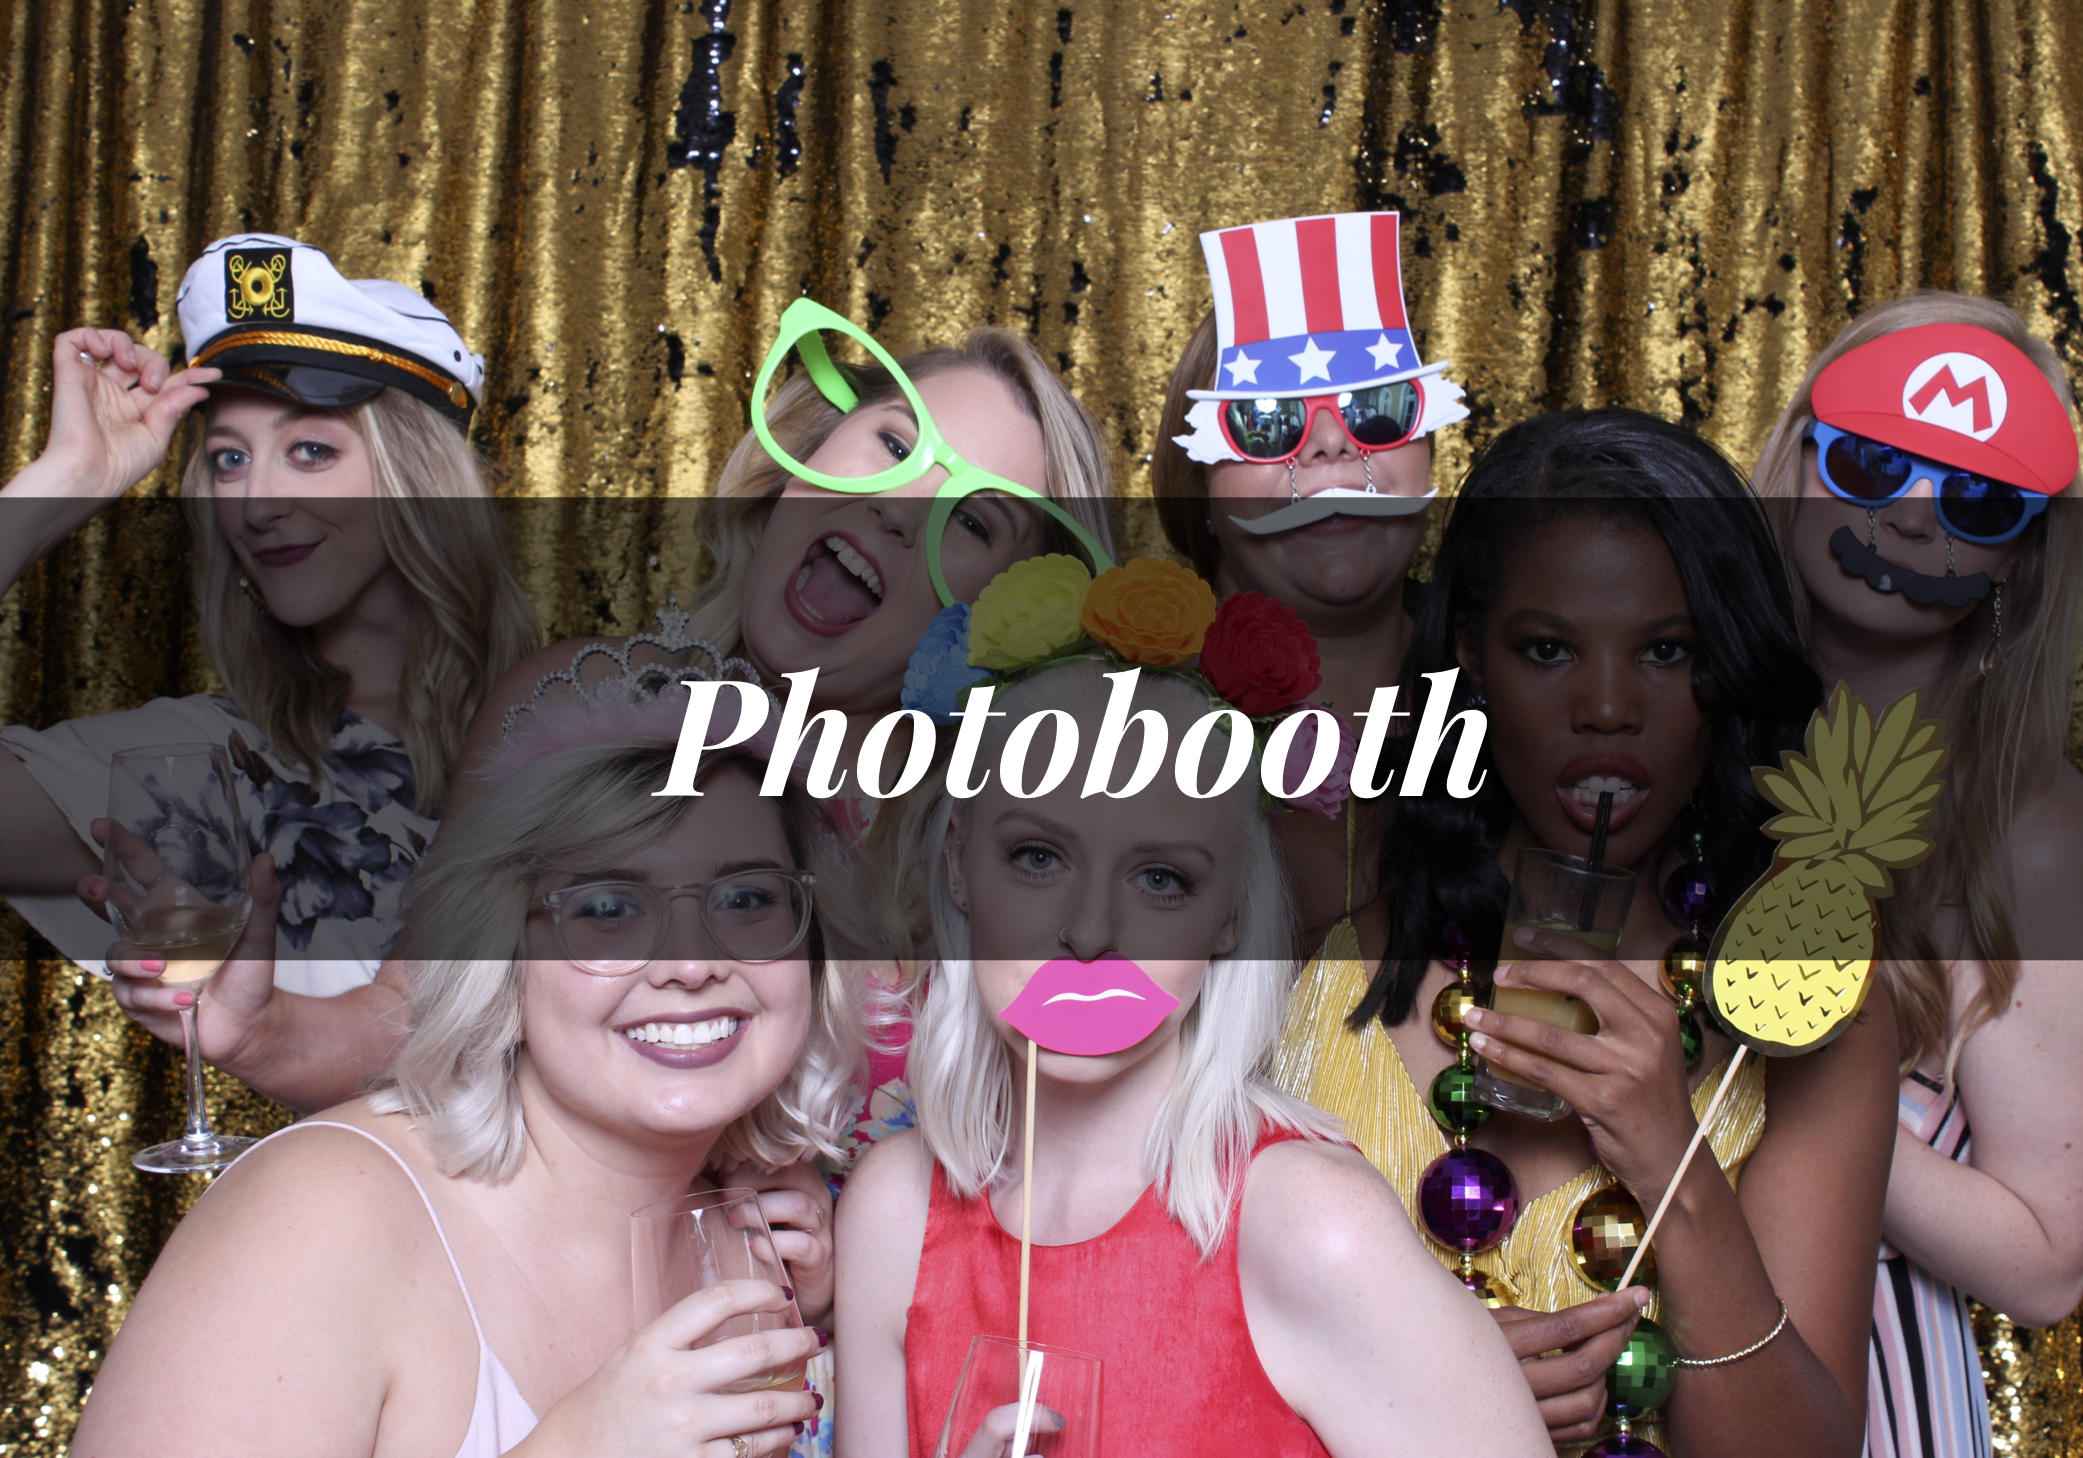 Photo Booth Packages include a custom photo booth template, backdrops, props, available prints, and access to the online gallery.